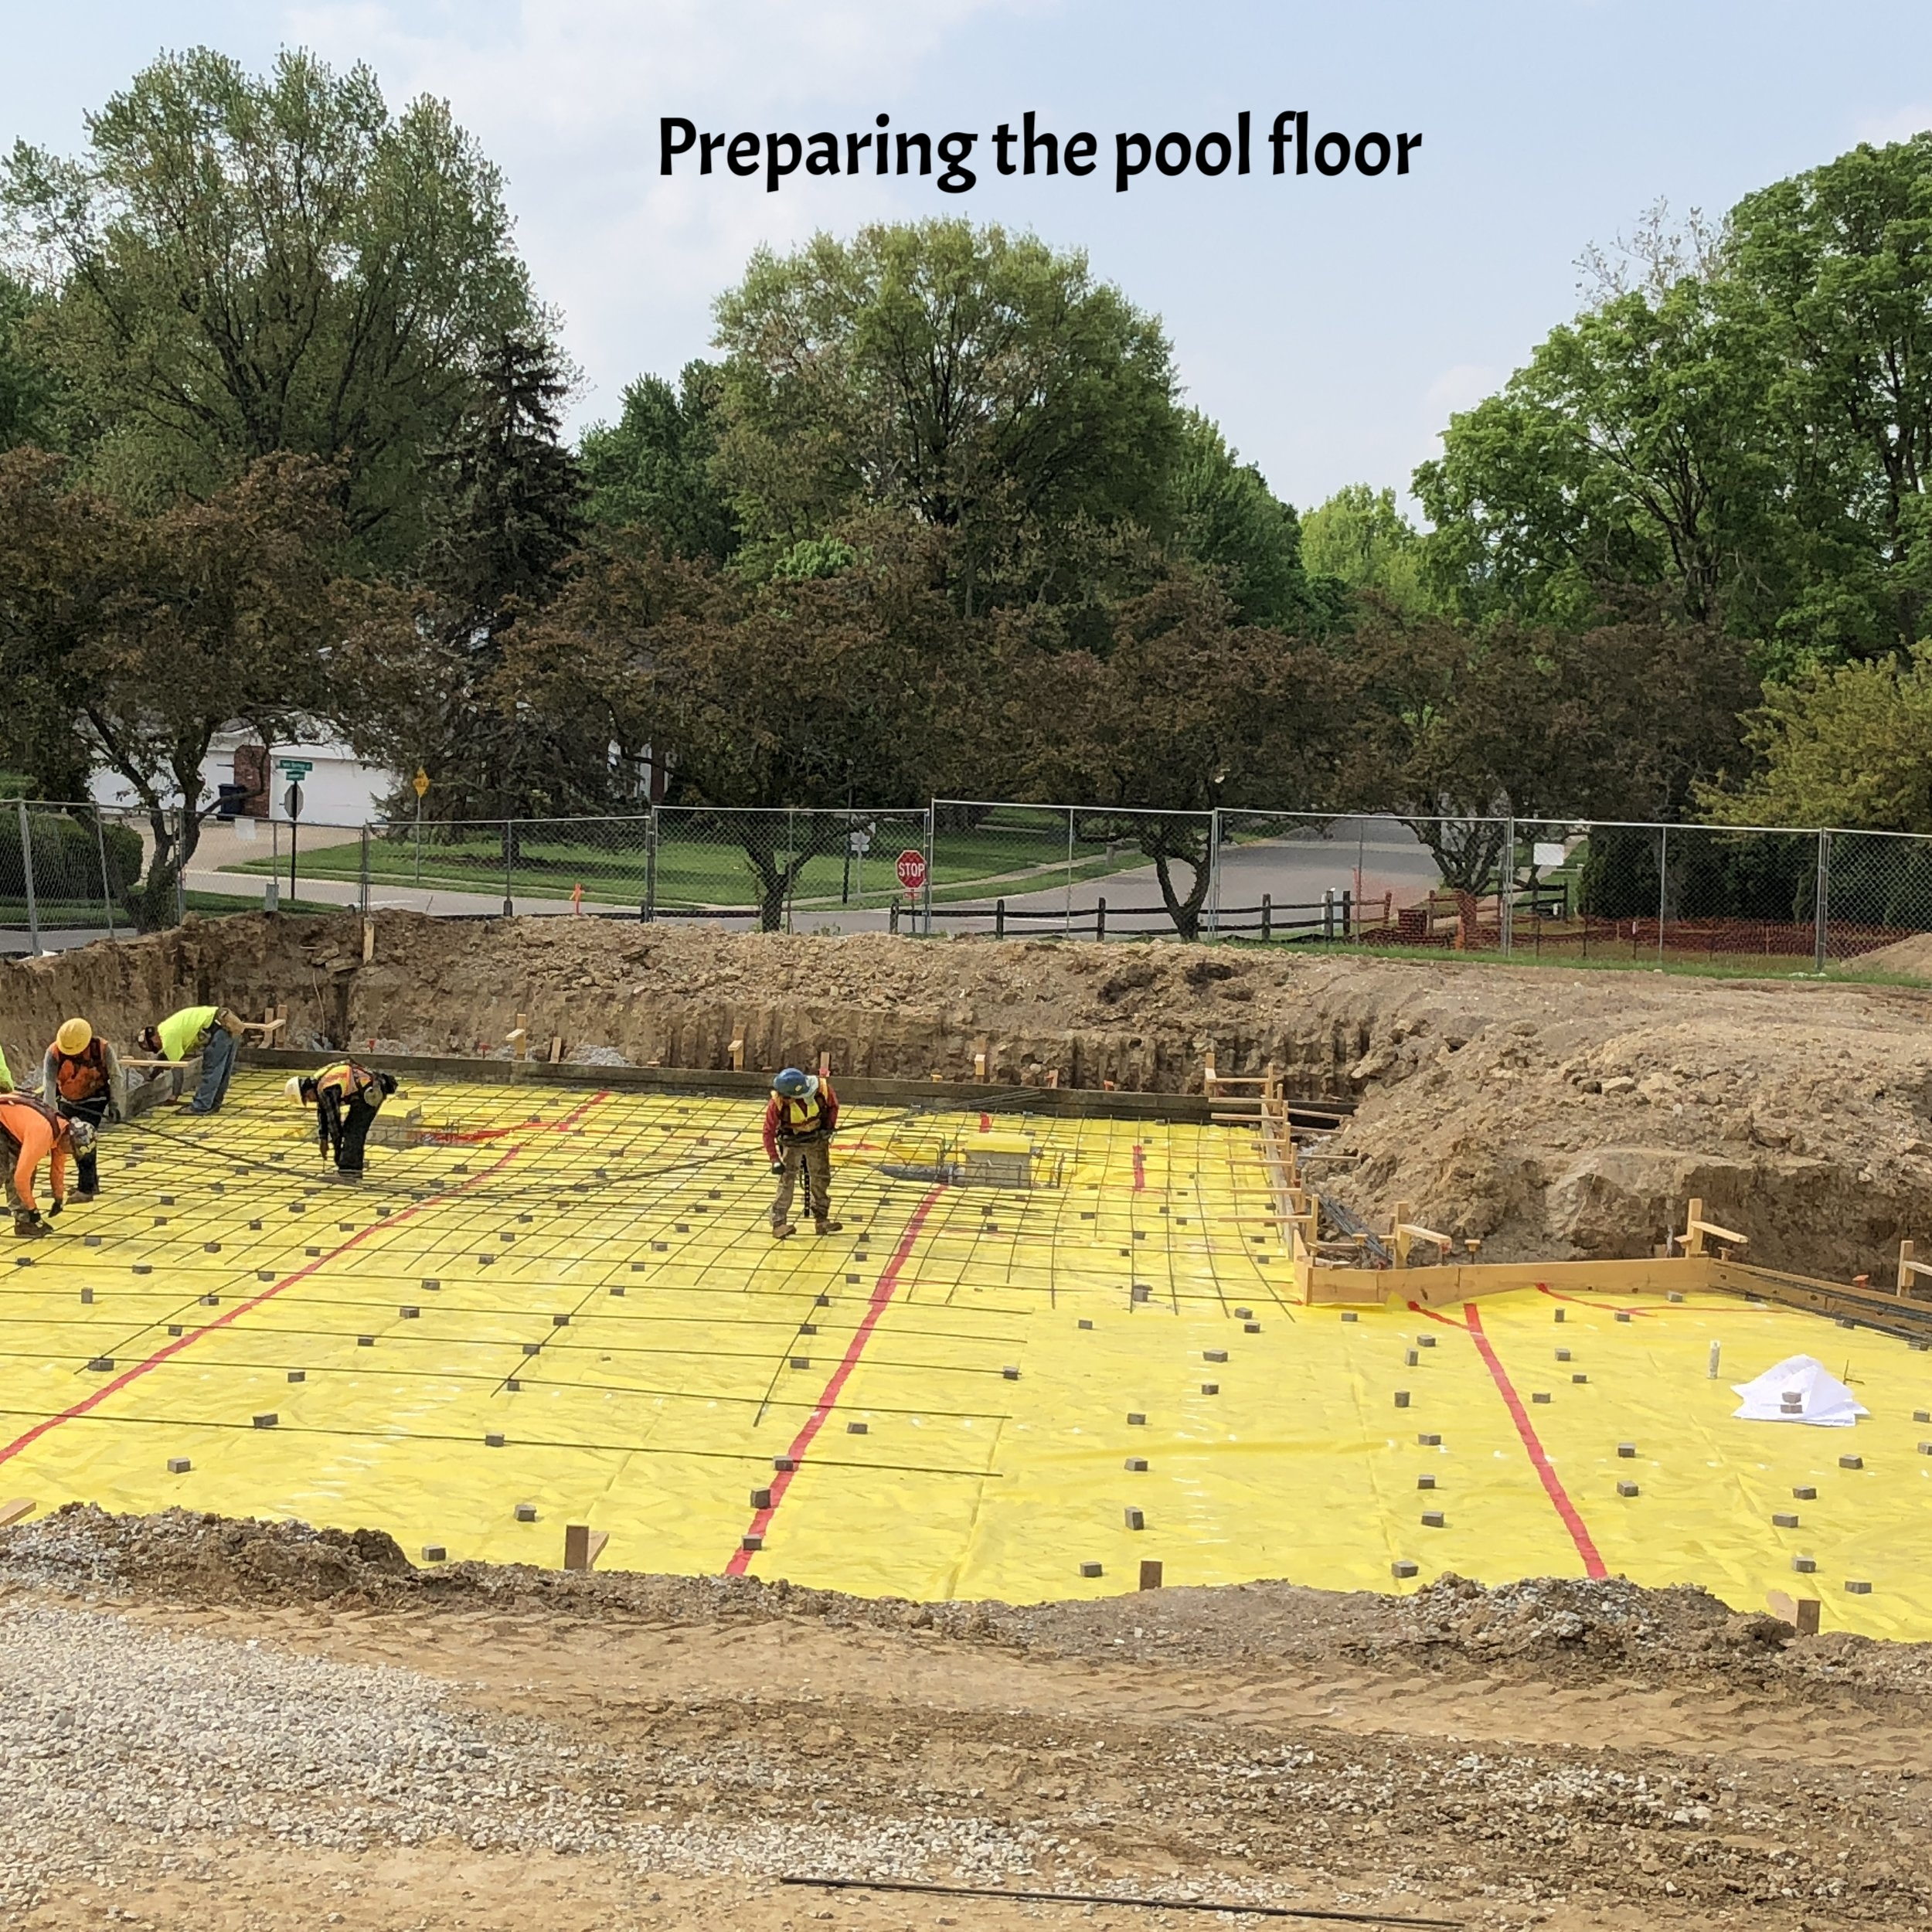 beginning to install the rebar for the floor of the new pool